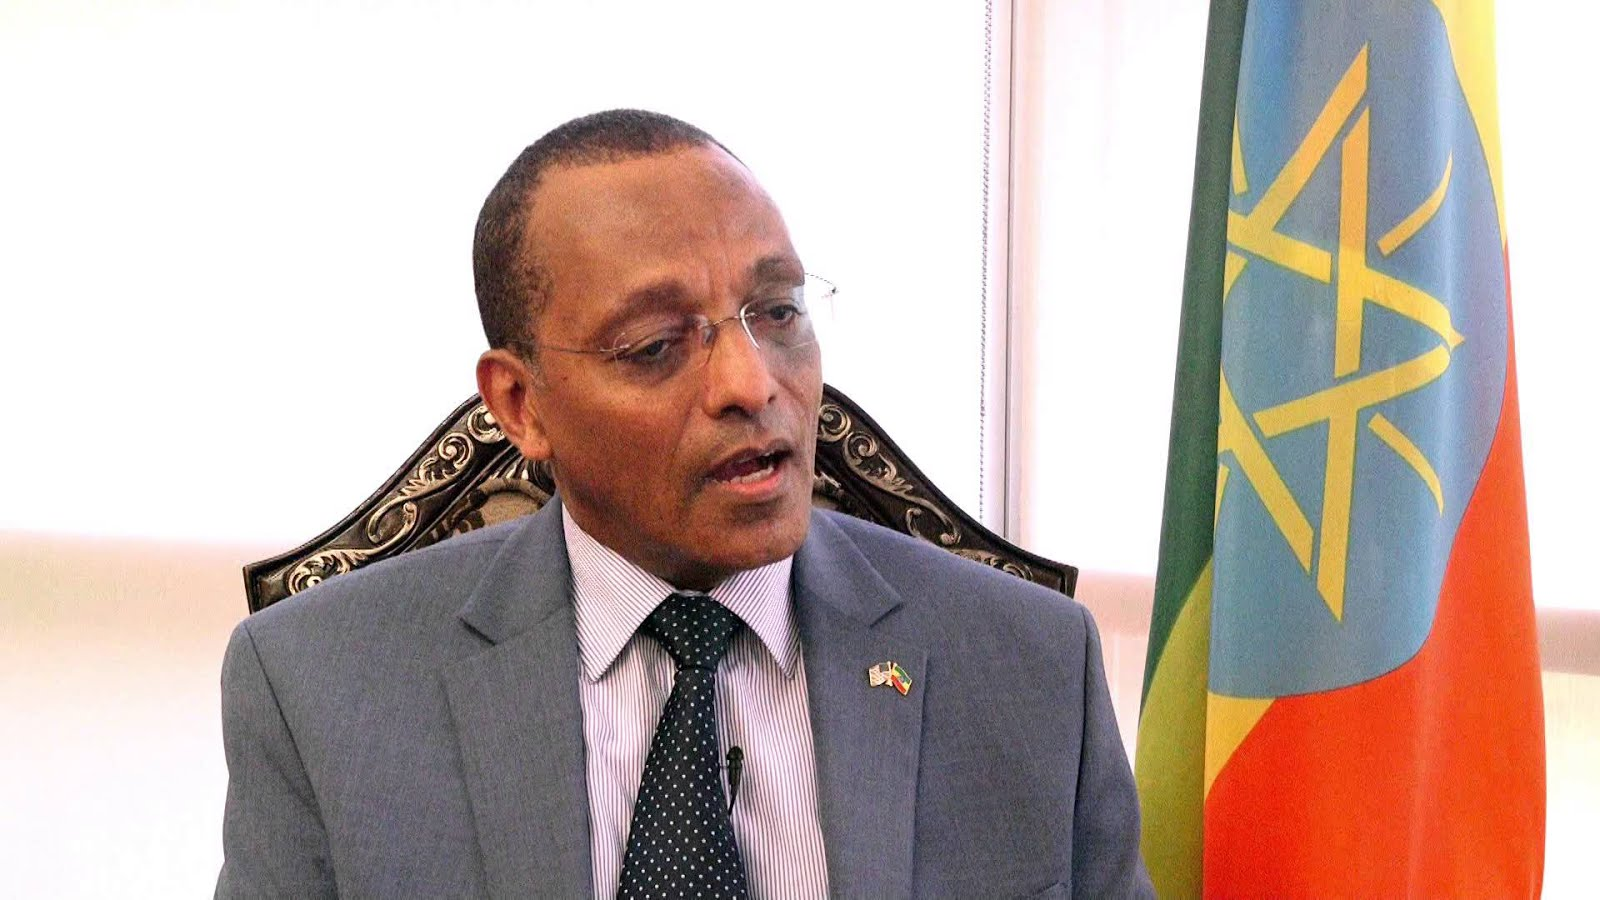 <Ethiopian Ambassador to the U.S. may not return home due to allegations of corruption: ESAT